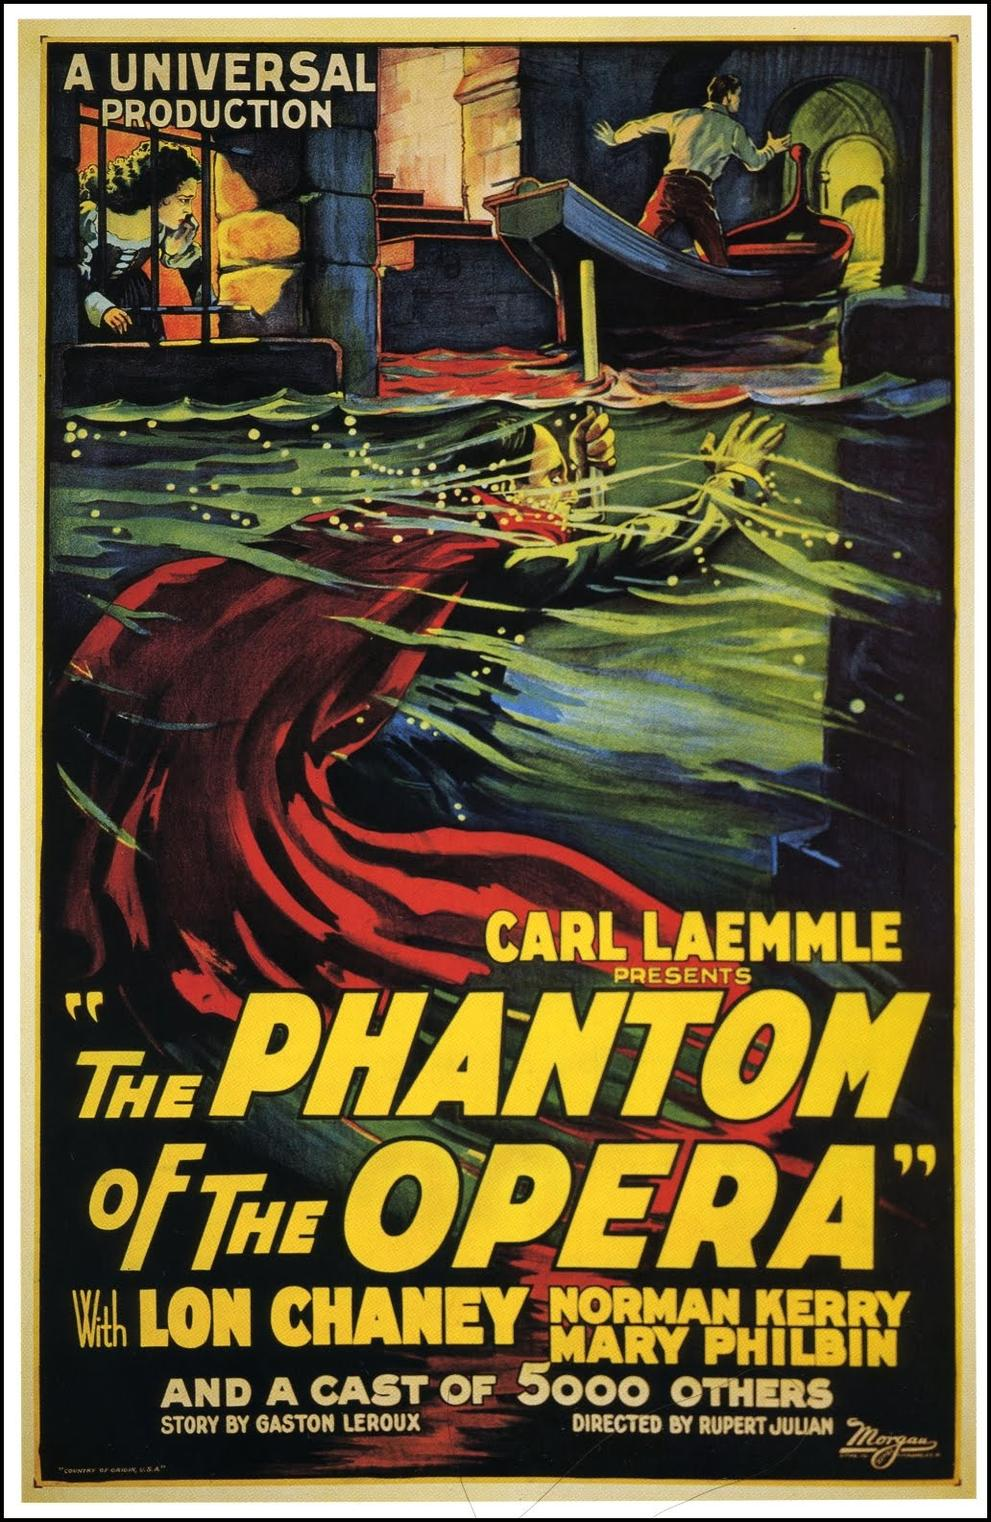 20140821145410!The_Phantom_of_the_Opera_(1925_film).jpg